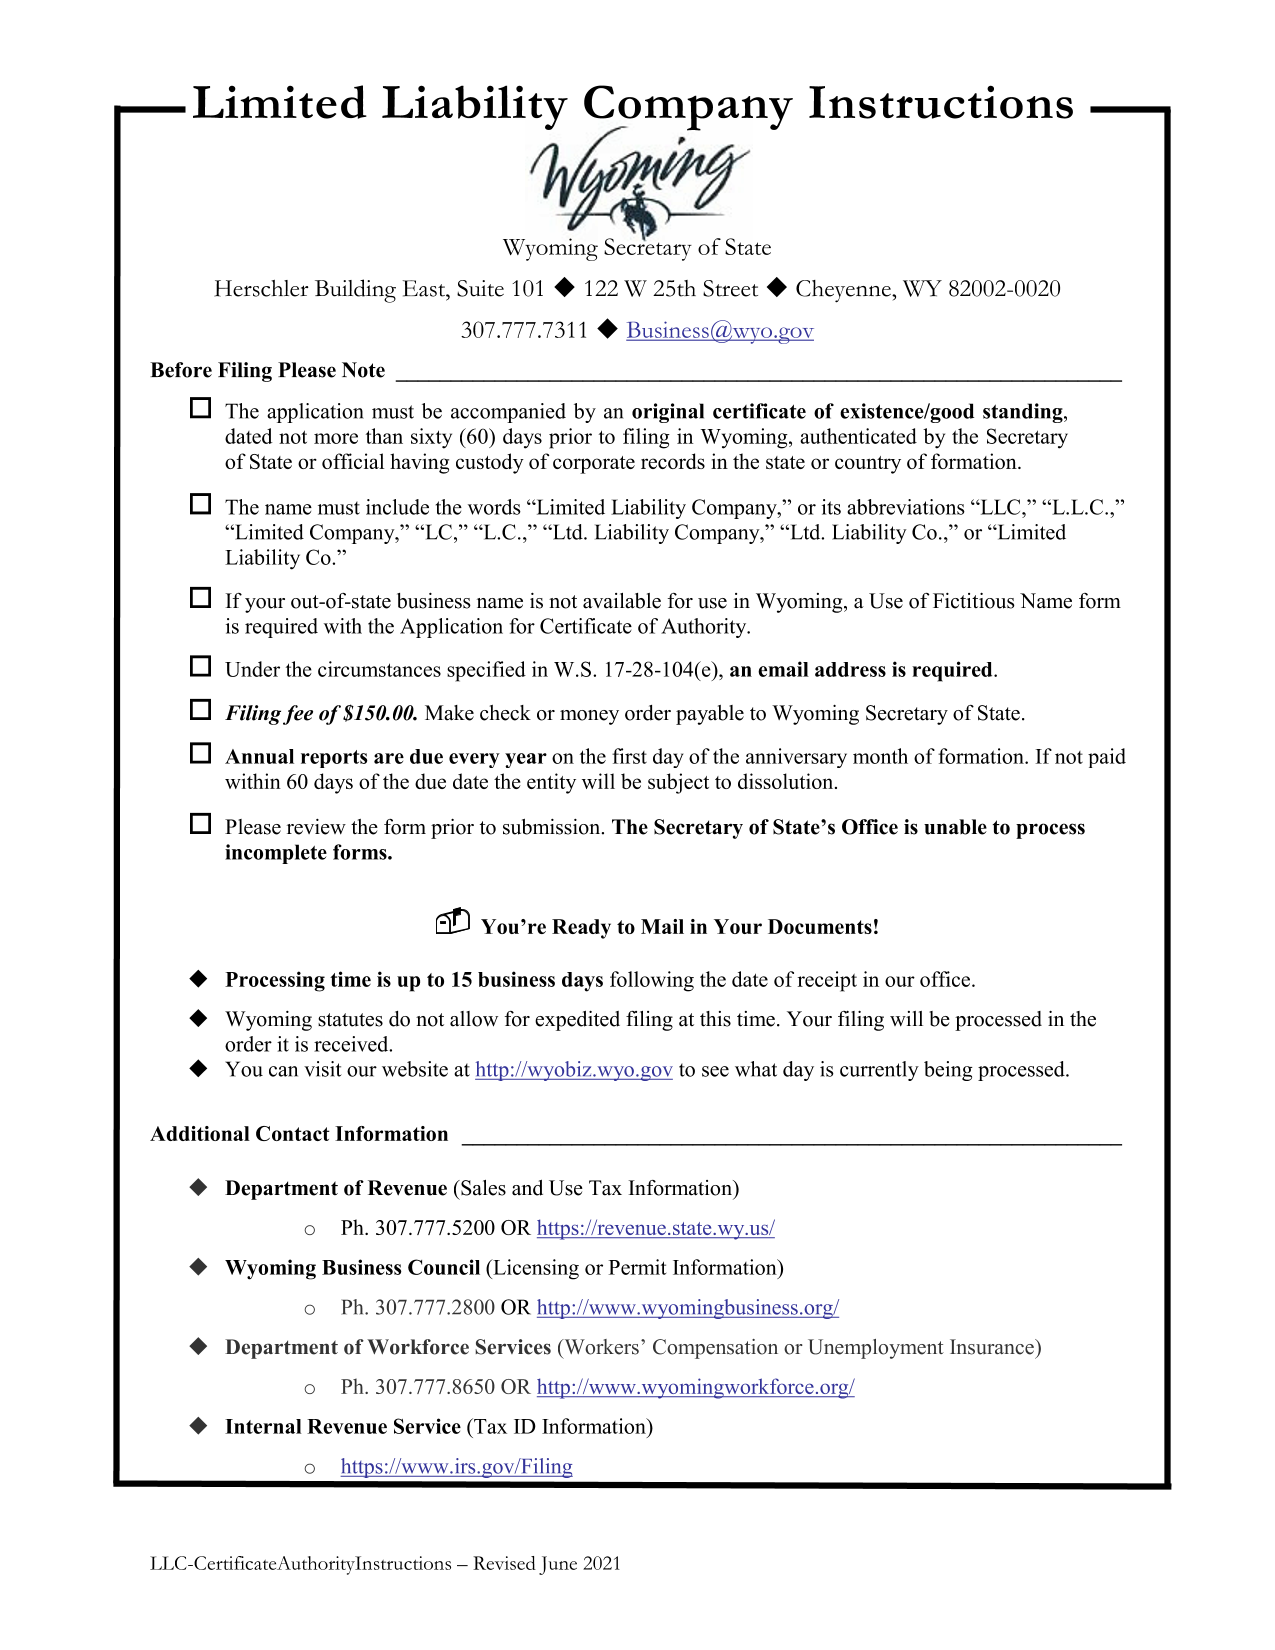 wyoming-foreign-llc-application-for-certificate-of-authority